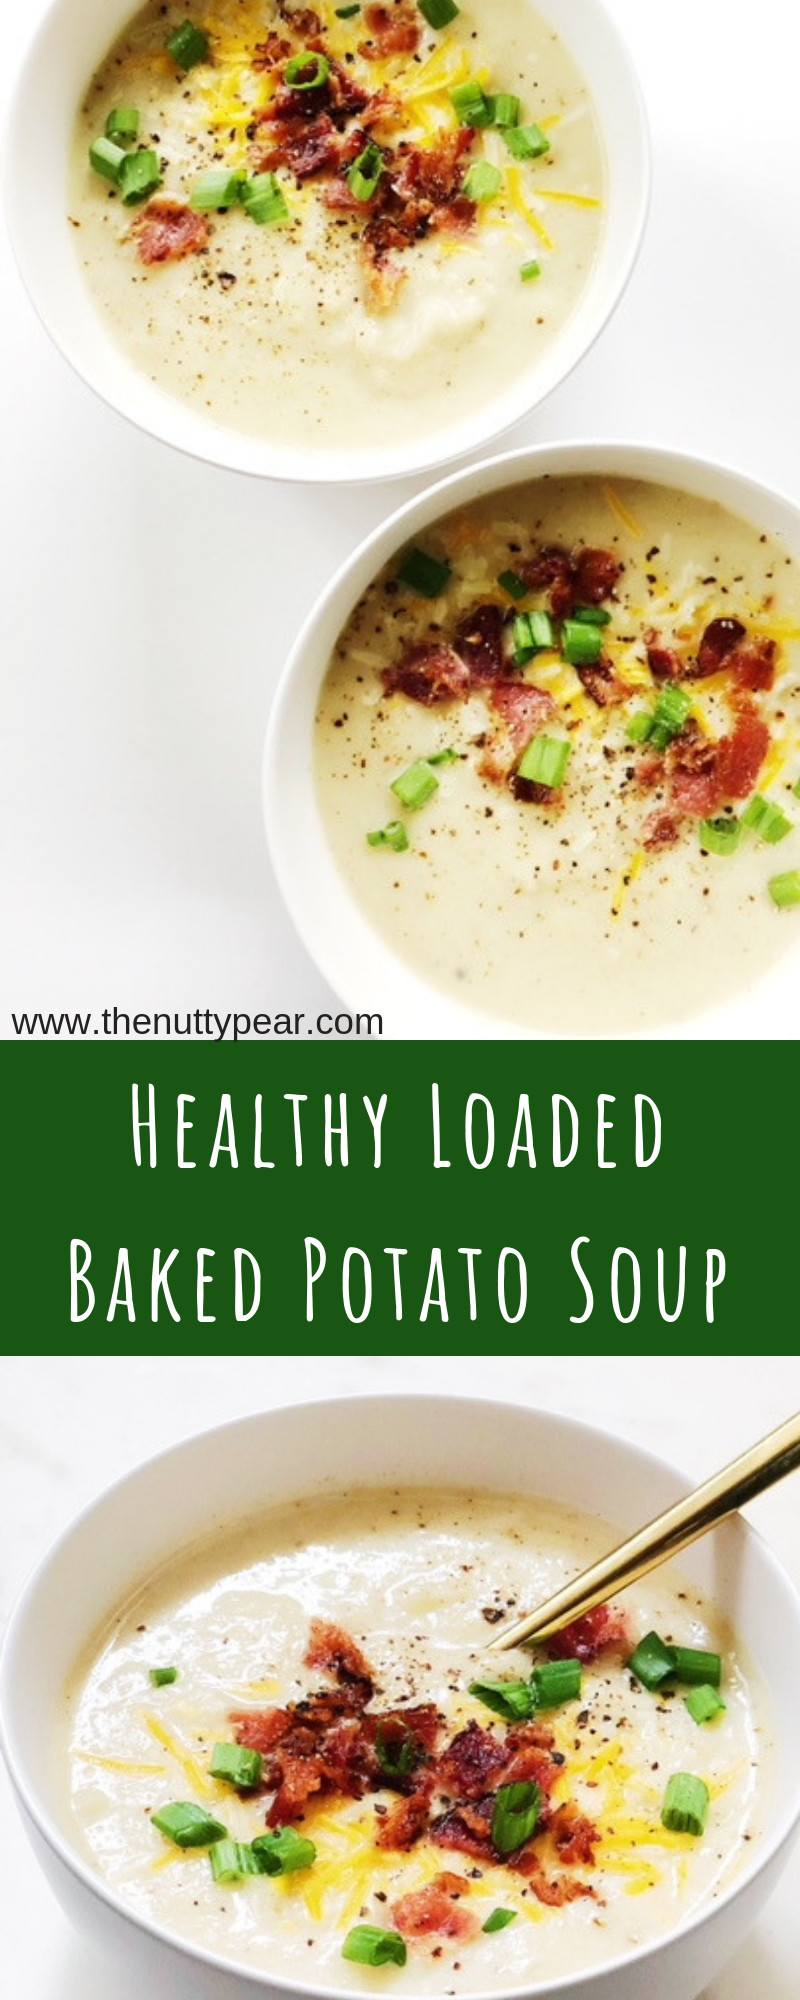 Healthy Loaded Baked Potato Soup  Meals Archives